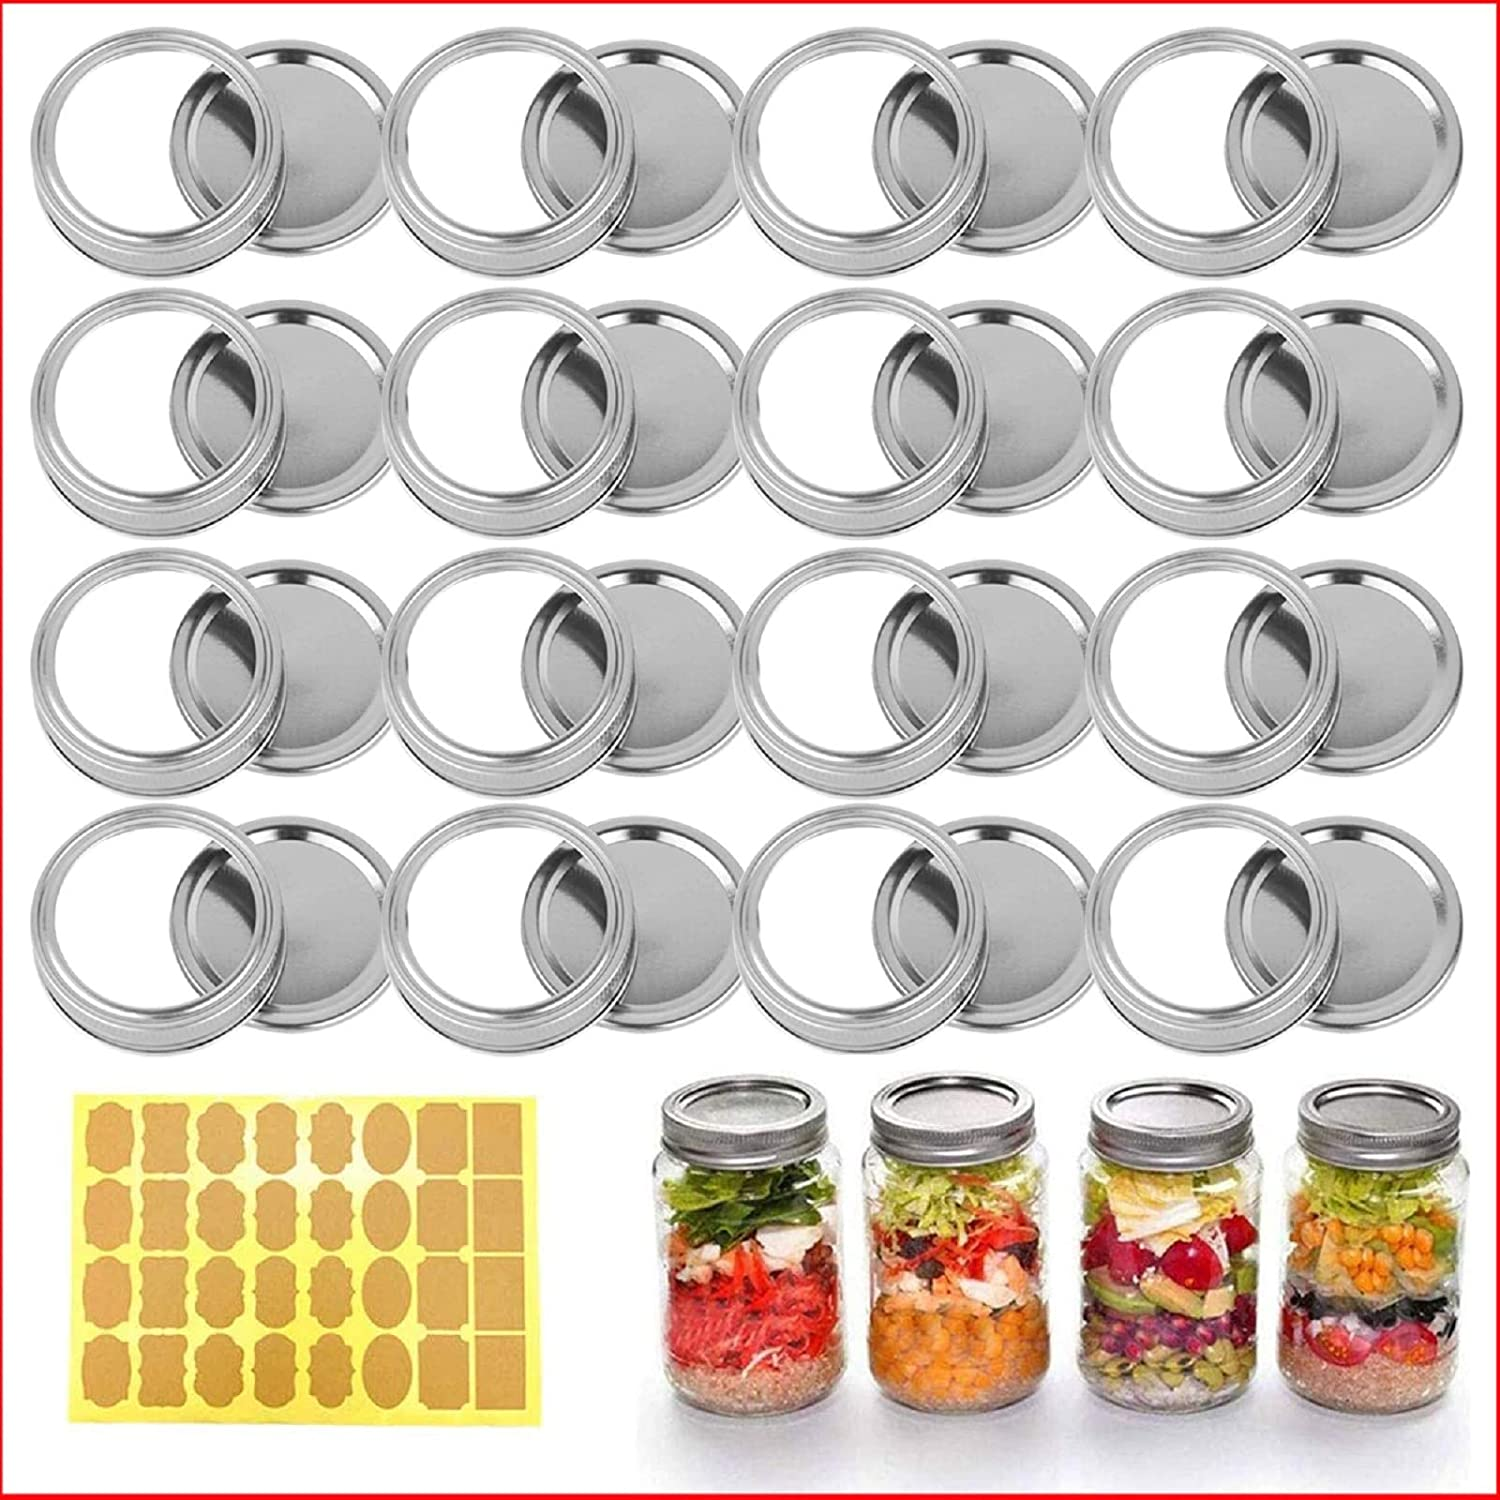 24 Sets 70MM Regular Mouth Mason Canning Jar Lids and Bands, Split-Type Canning Lids and Rings Reusable Leak Proof and Secure Canning Jar Caps (70mm Lids & Bands(24 Sets Silver)